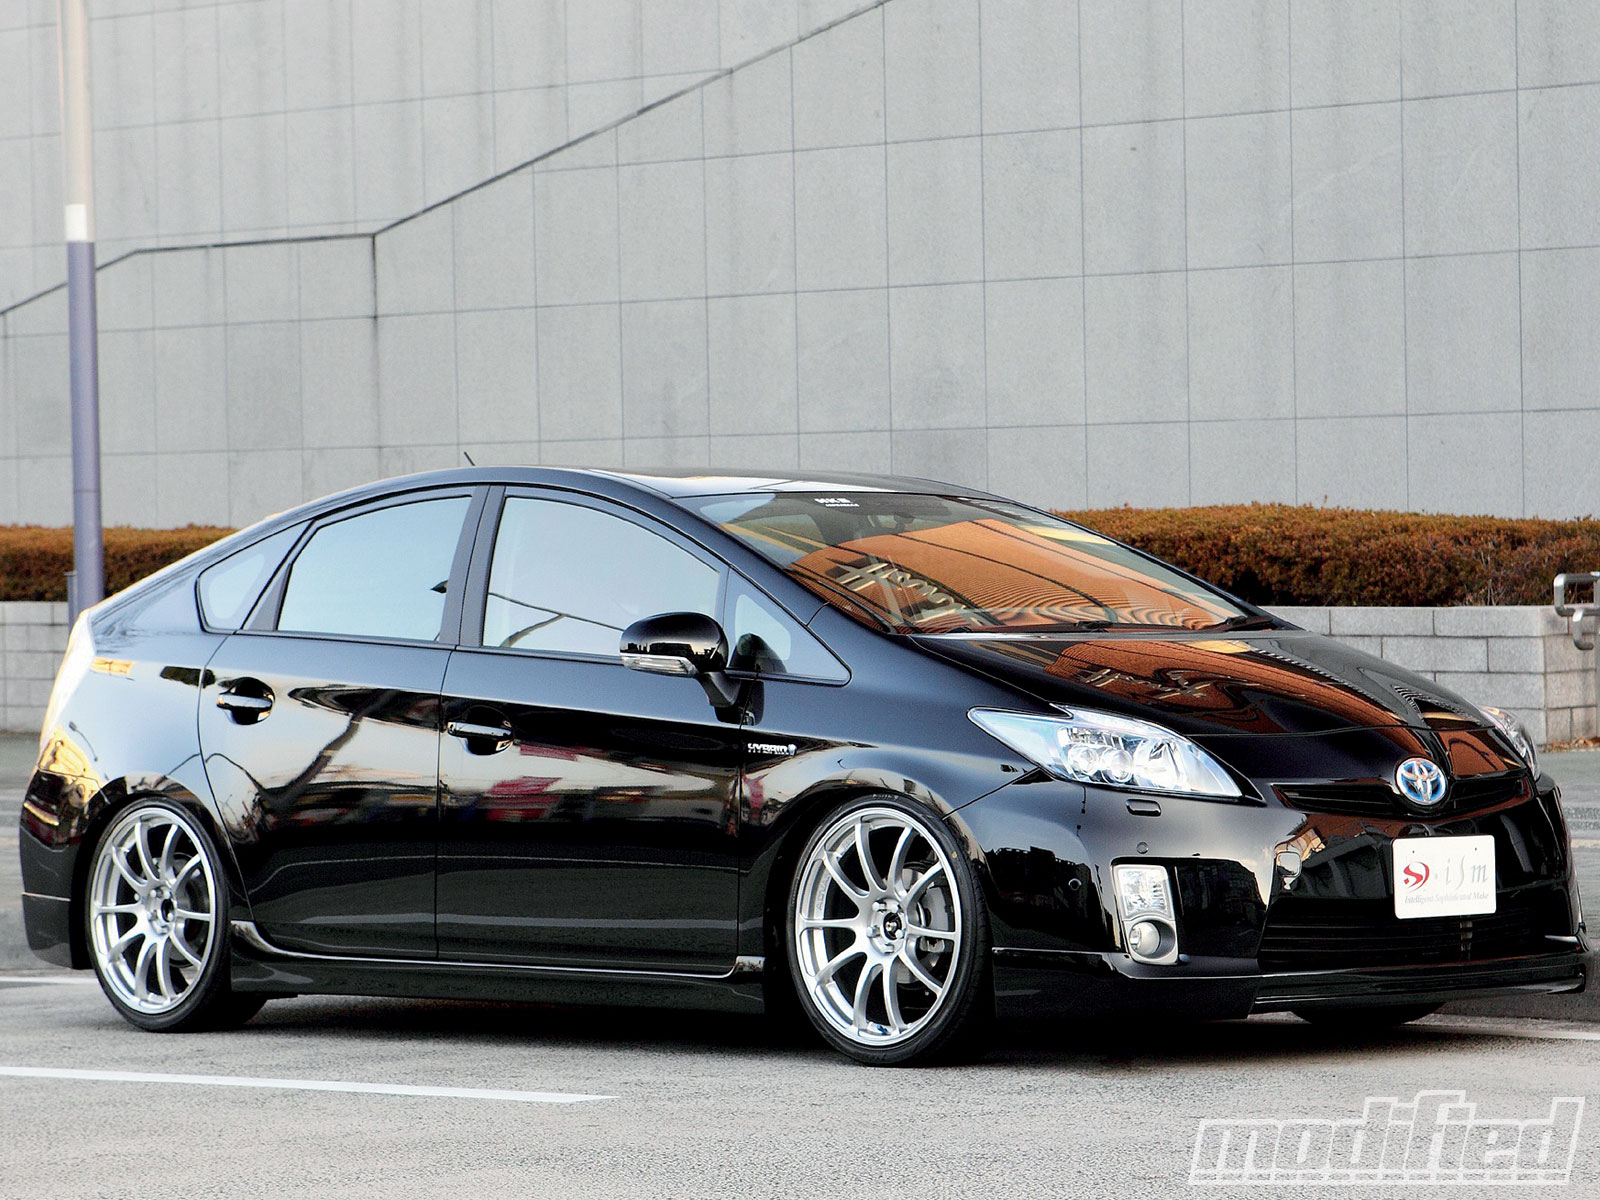 What Do You Guys Think Of The 420hp Yaris